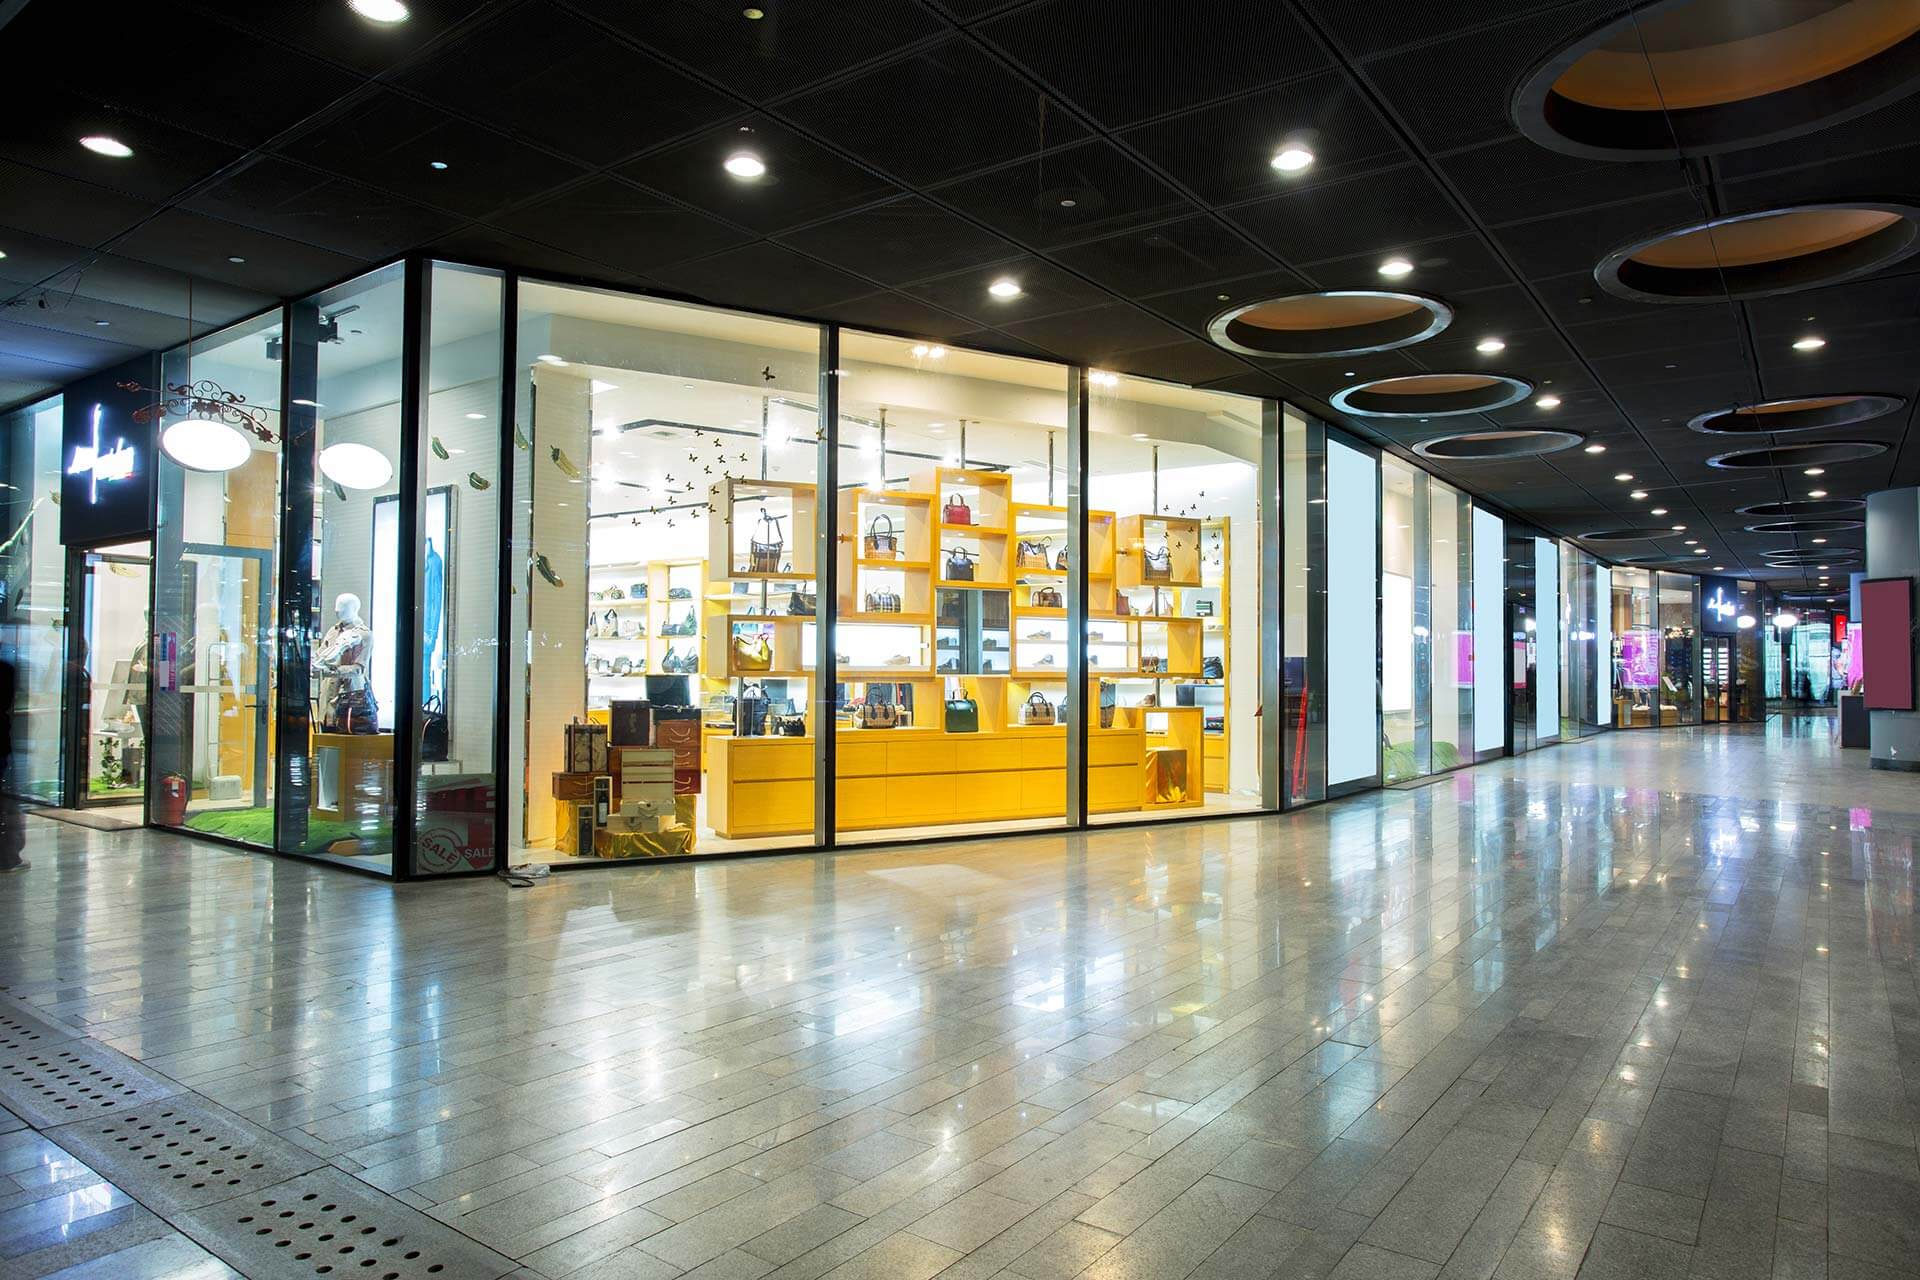 Window Cleaning - Regular Shopping mall / centre cleans